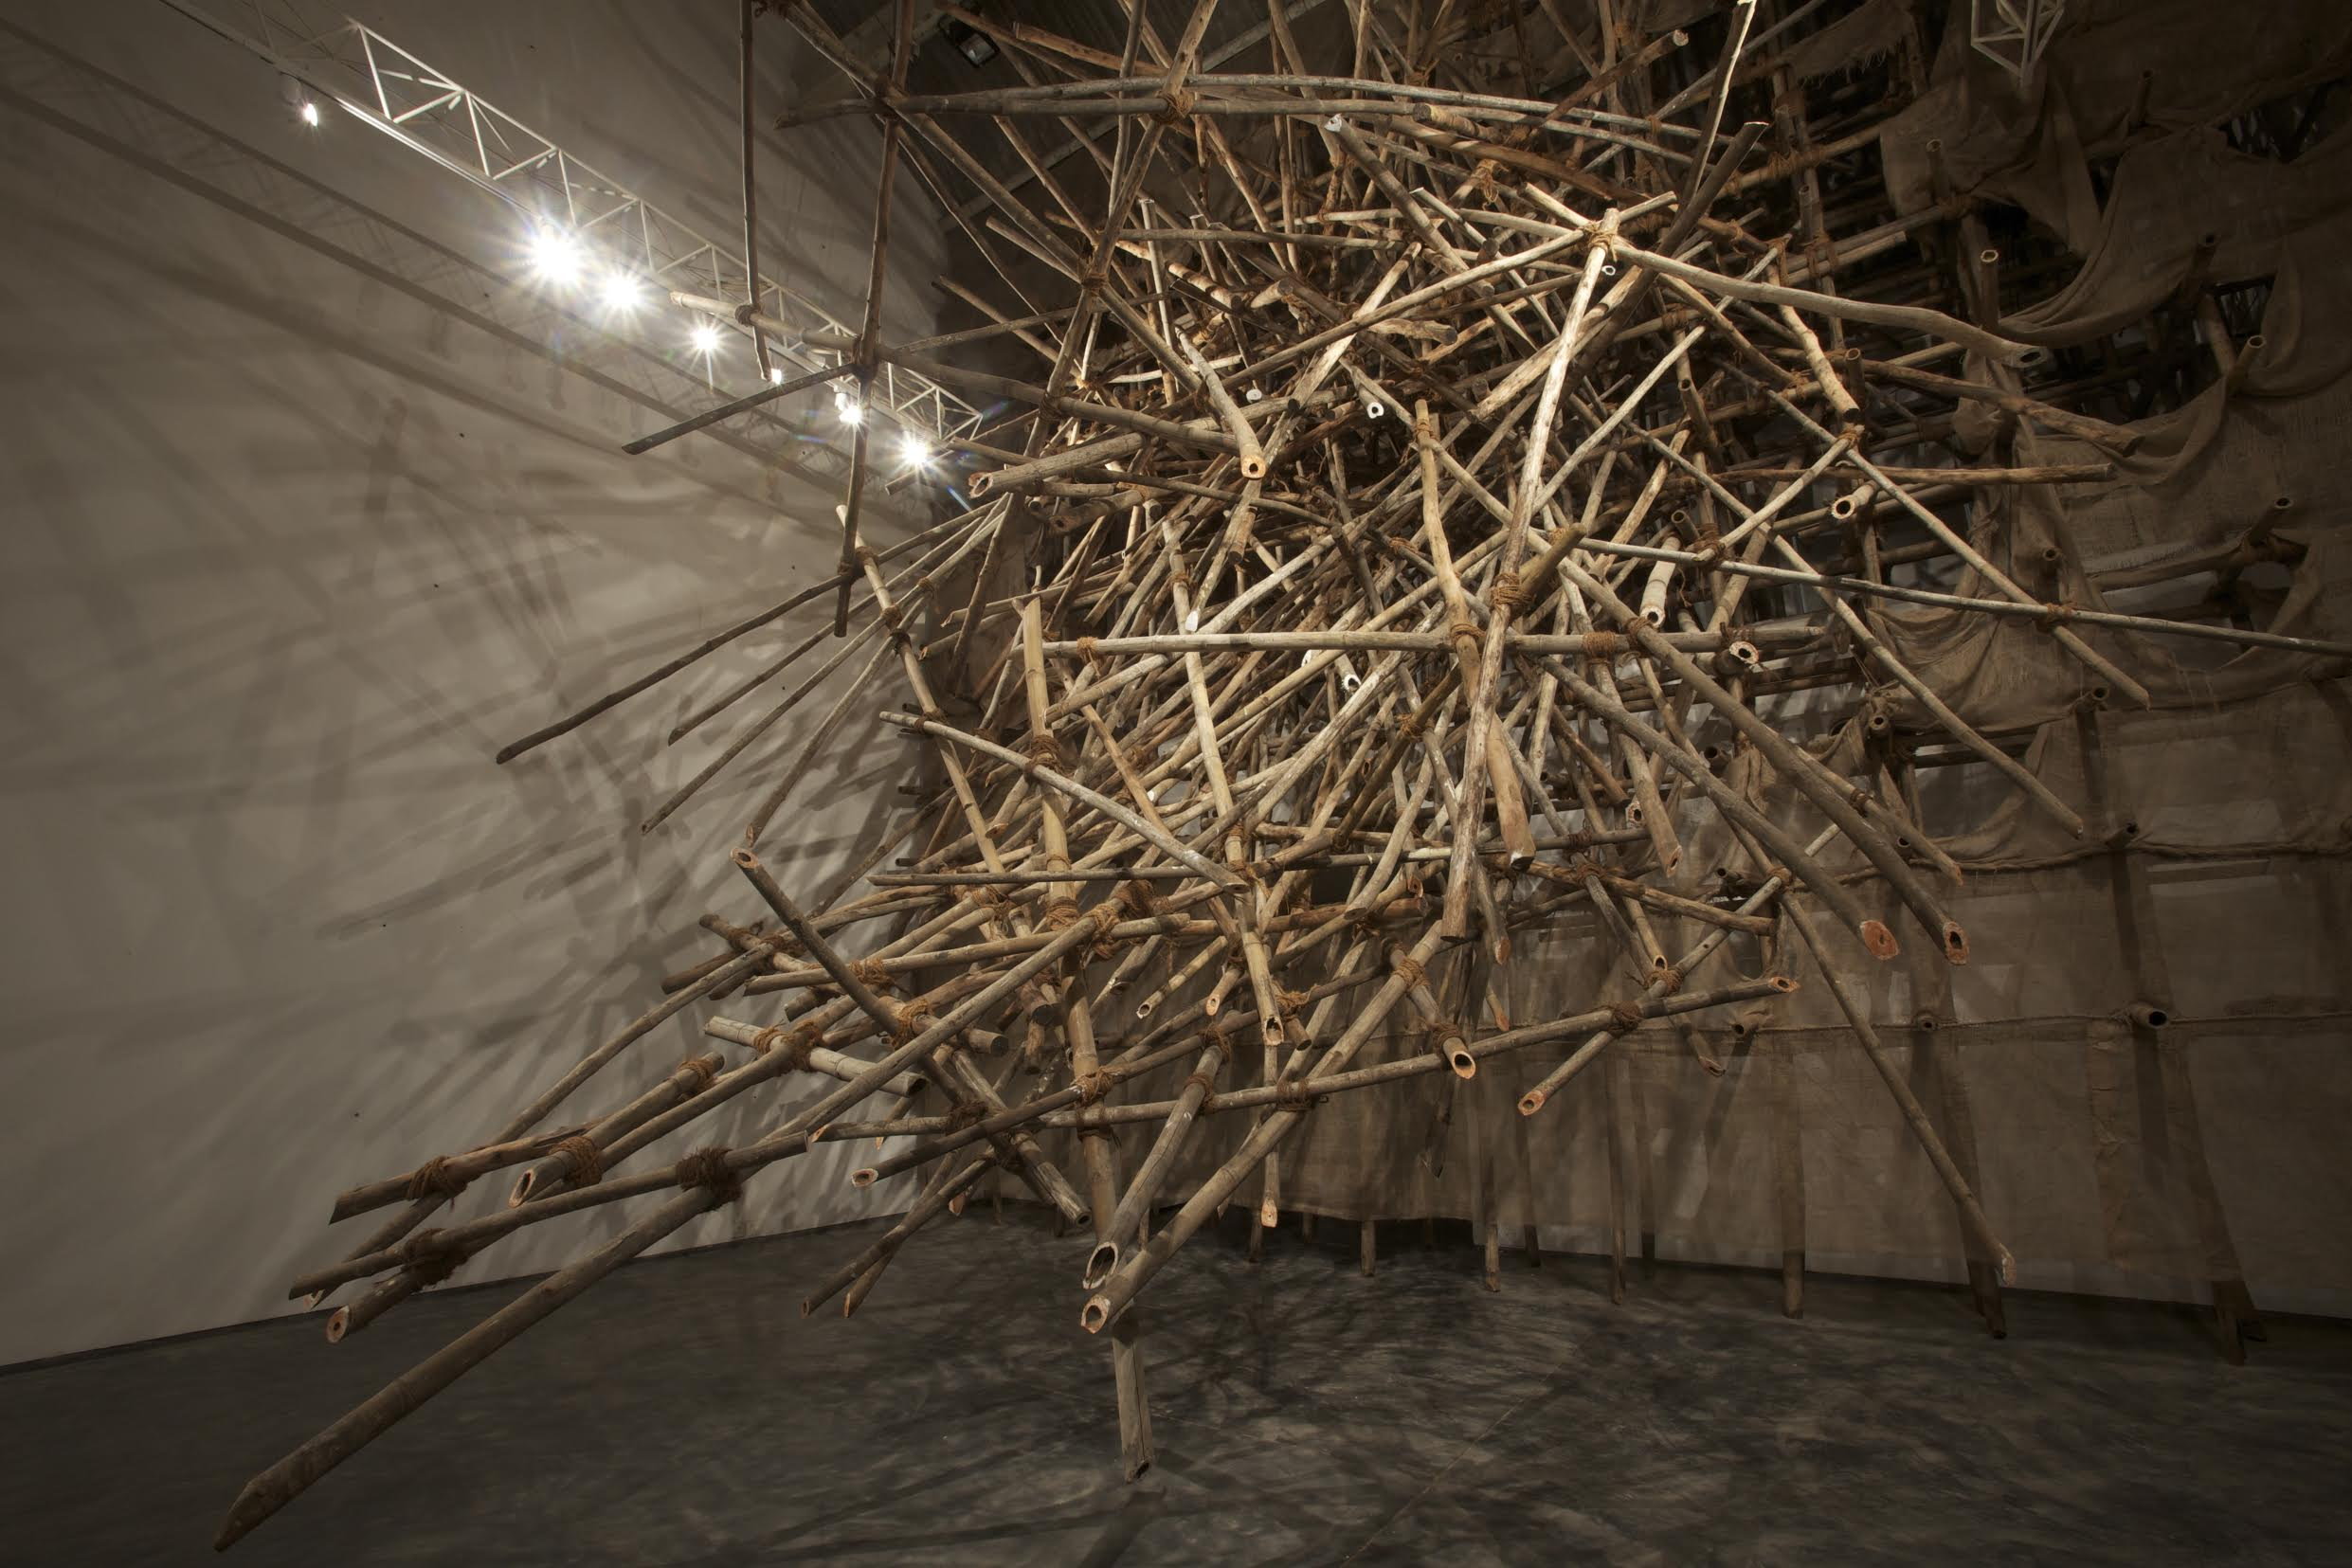 Pubic,  Bamboo, chalk, red clay, hessian cloth, rope, Site-specific installation,  28 x 33 x 30 feet